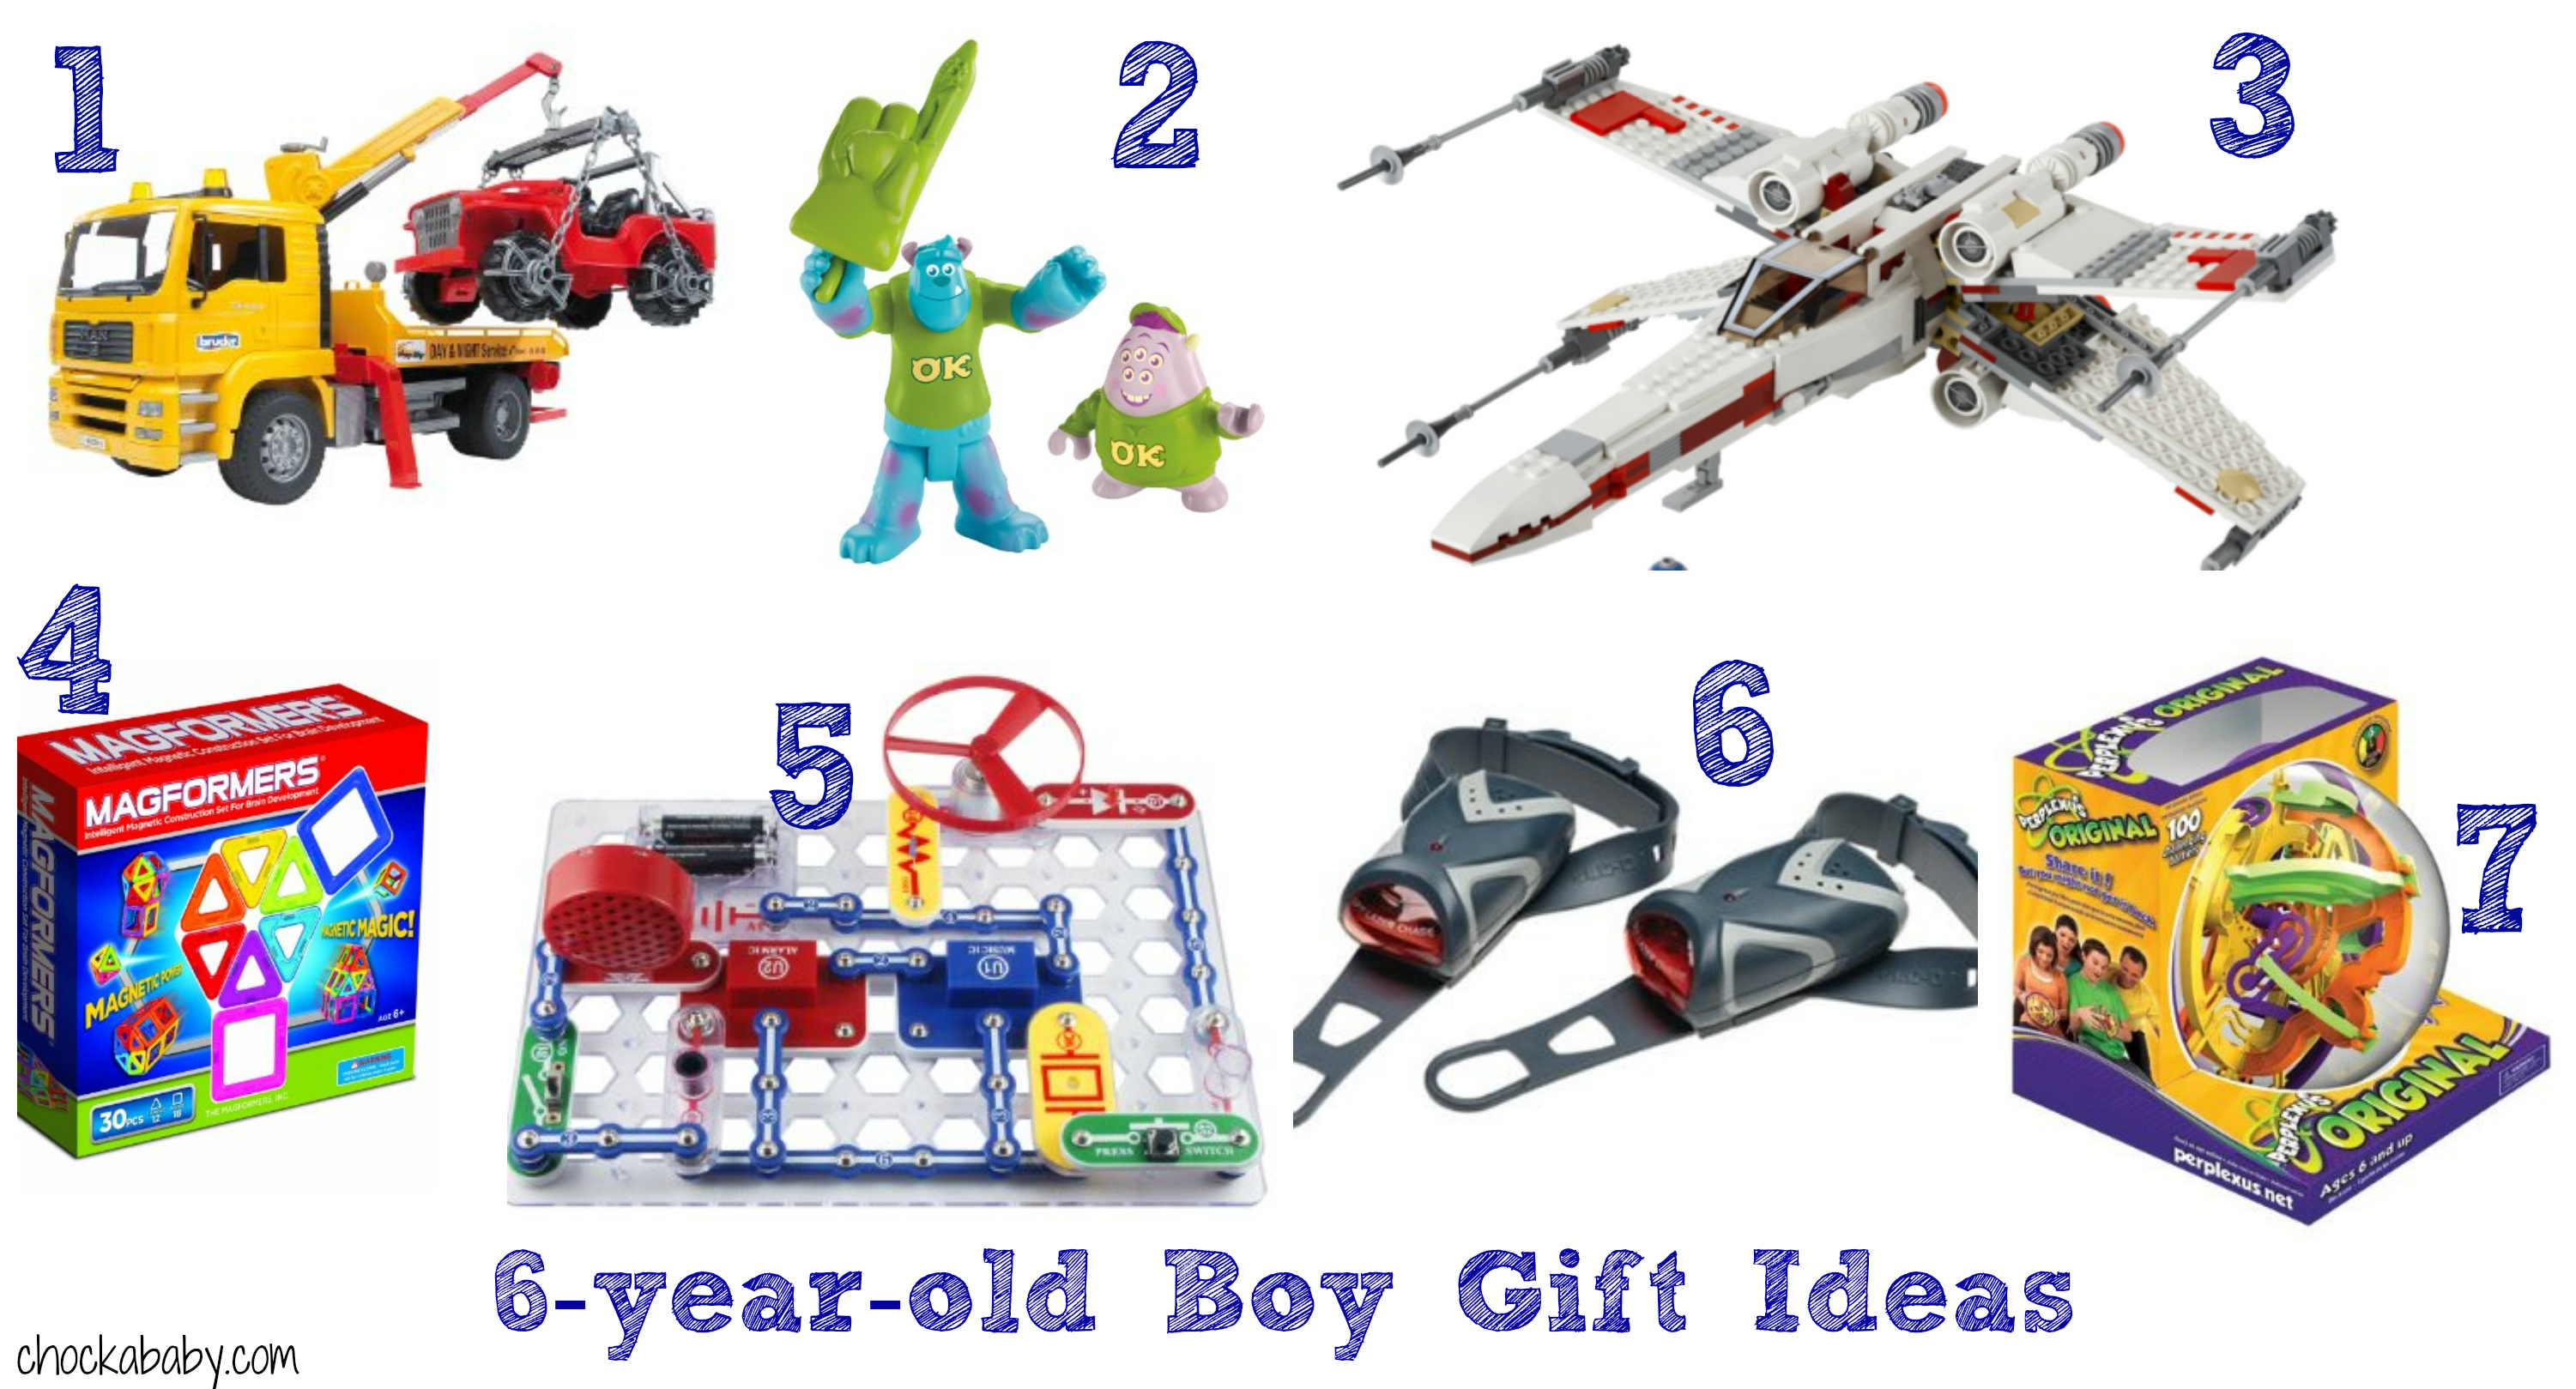 4 Year Old Boy Birthday Gift Ideas For 13 Boys Hubpages